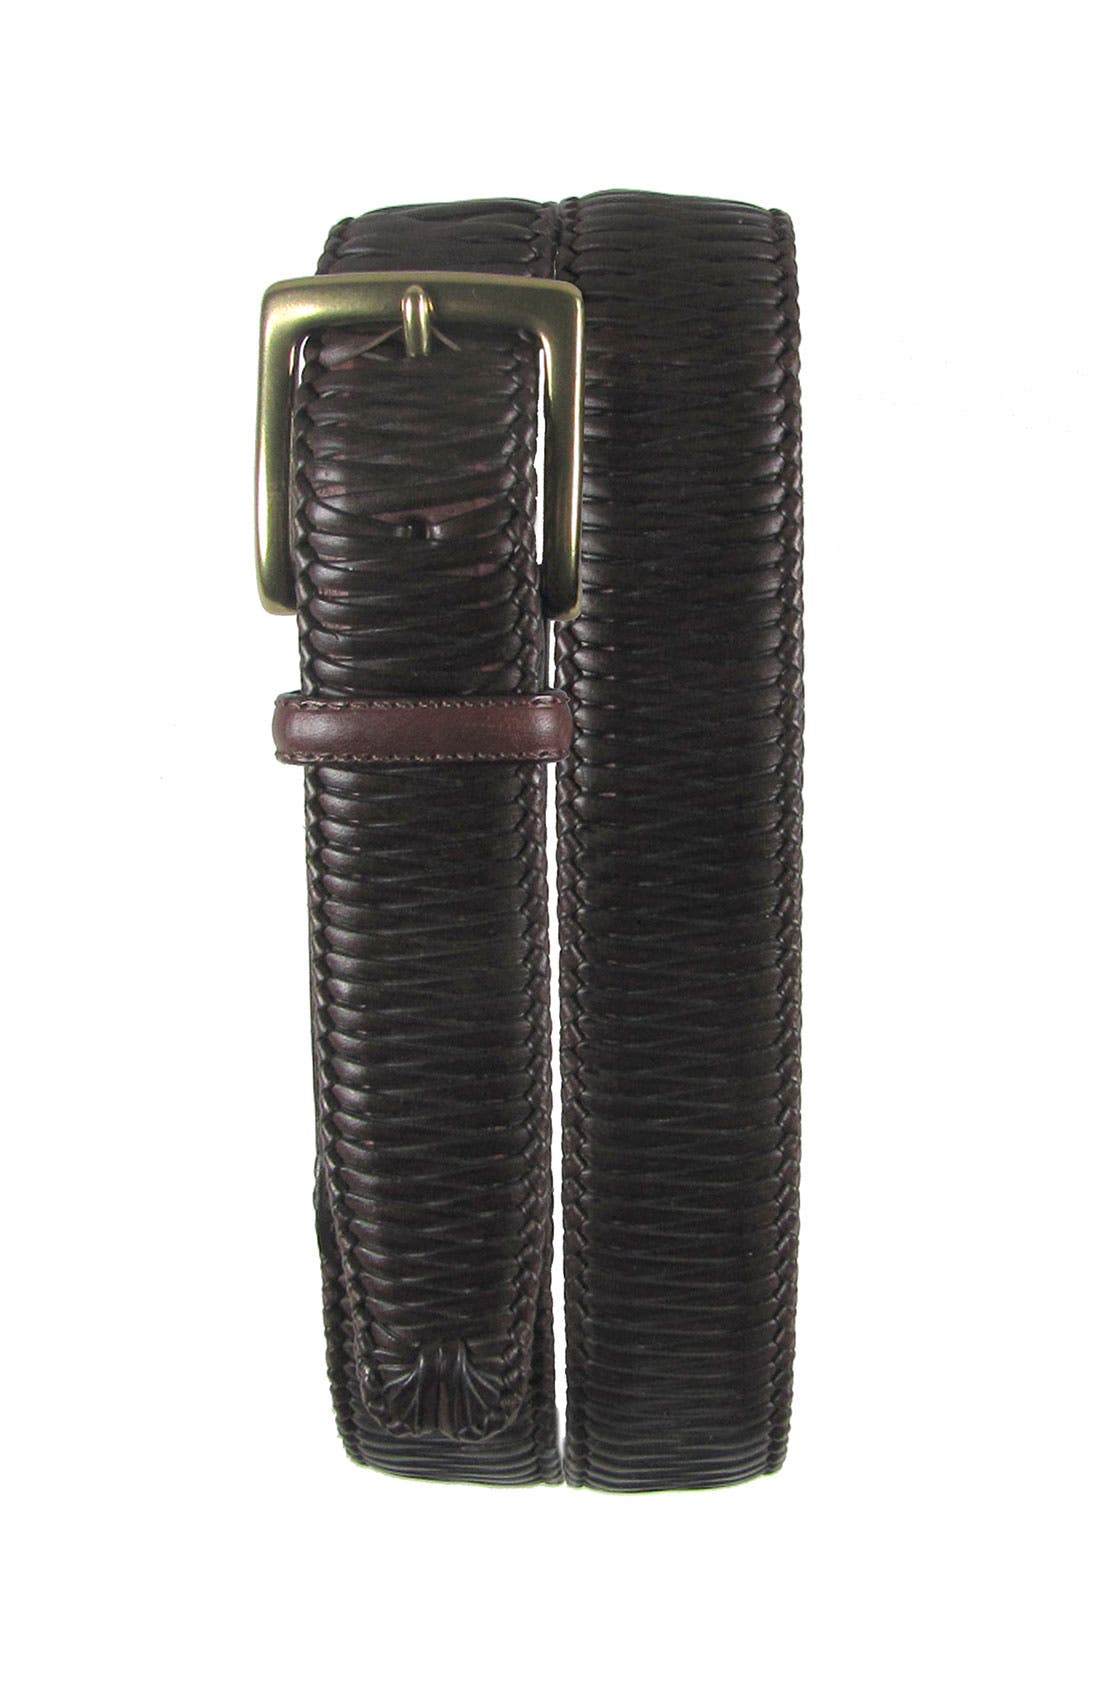 Tommy Bahama 'Largo' Woven Leather Belt